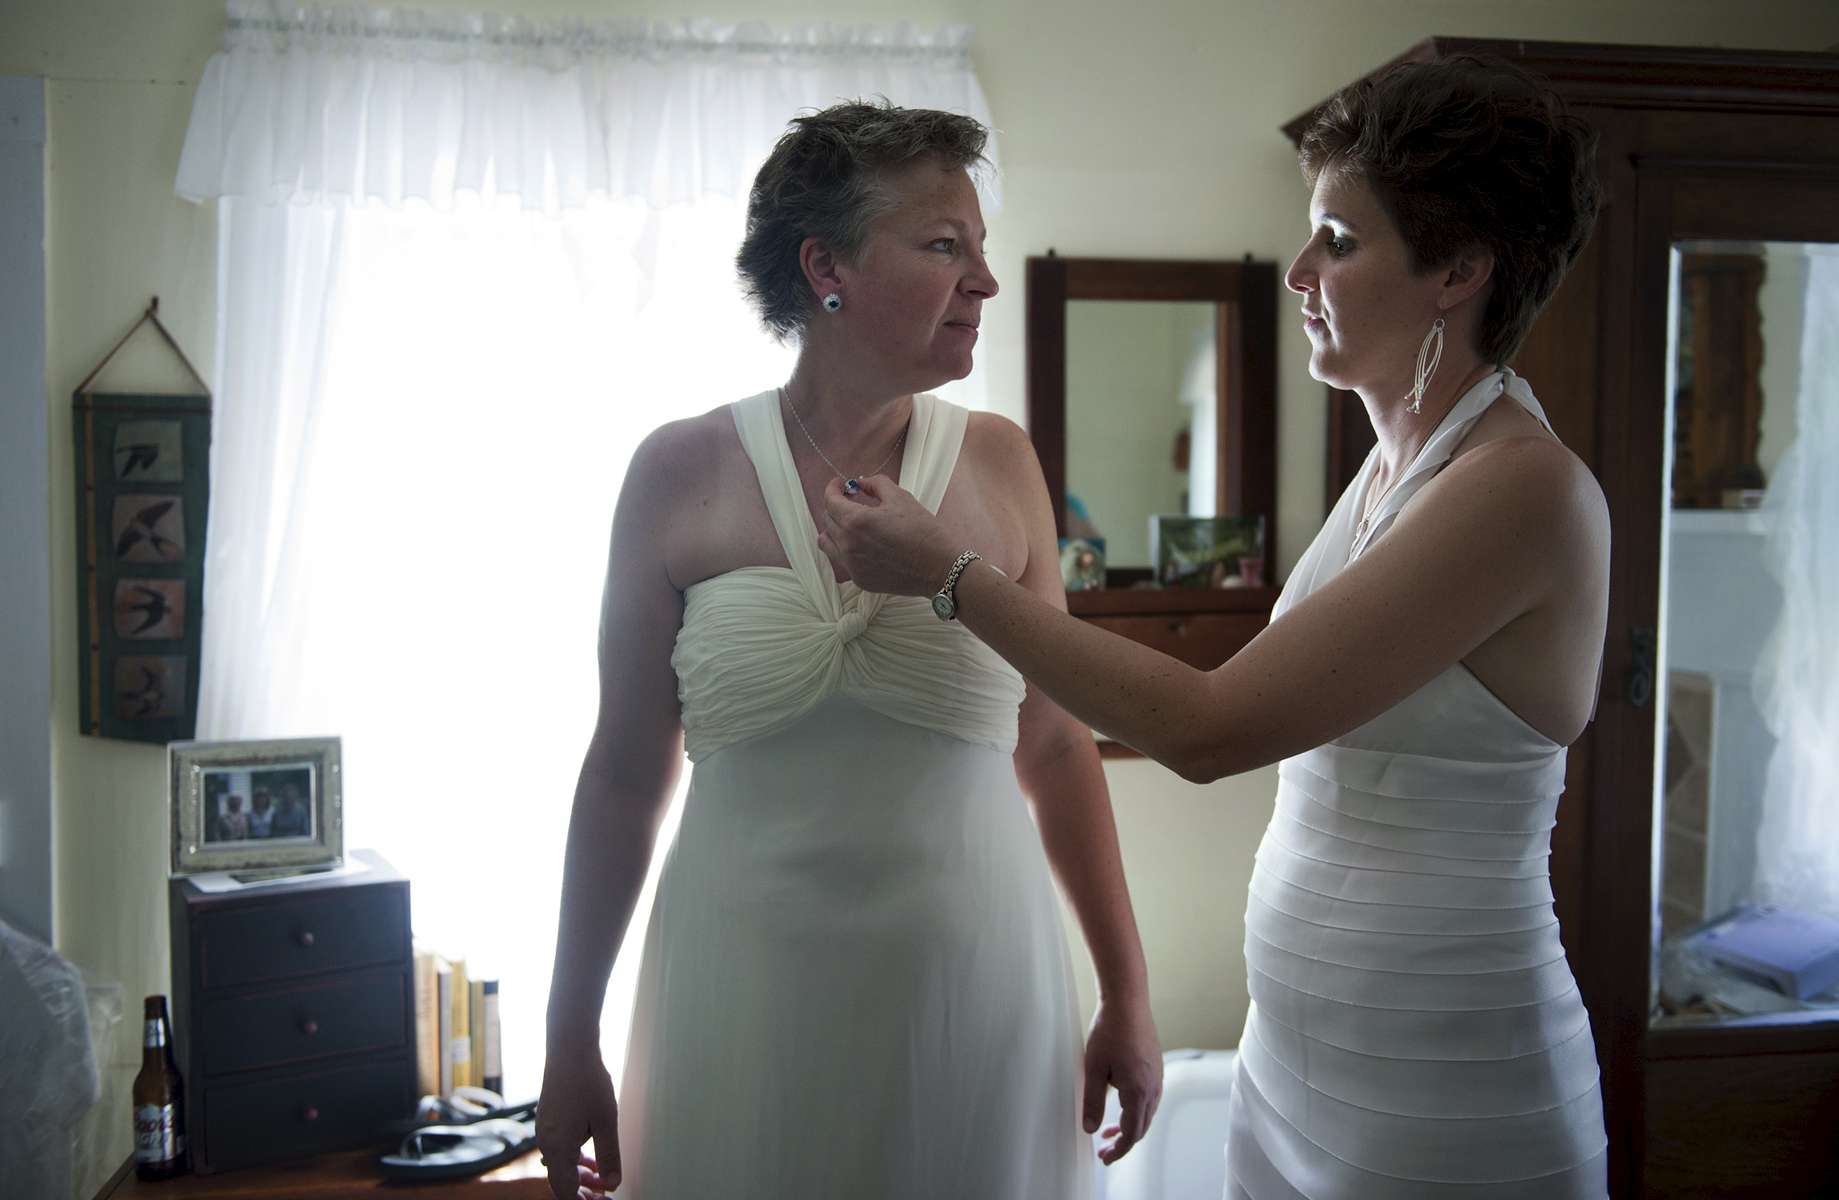 August Burns adjusts the necklace of her fiancé, Denise Ingram, before their wedding ceremony begins. The marriage was an important milestone for the women, who had faced struggles gaining acceptance of their long-term relationship.